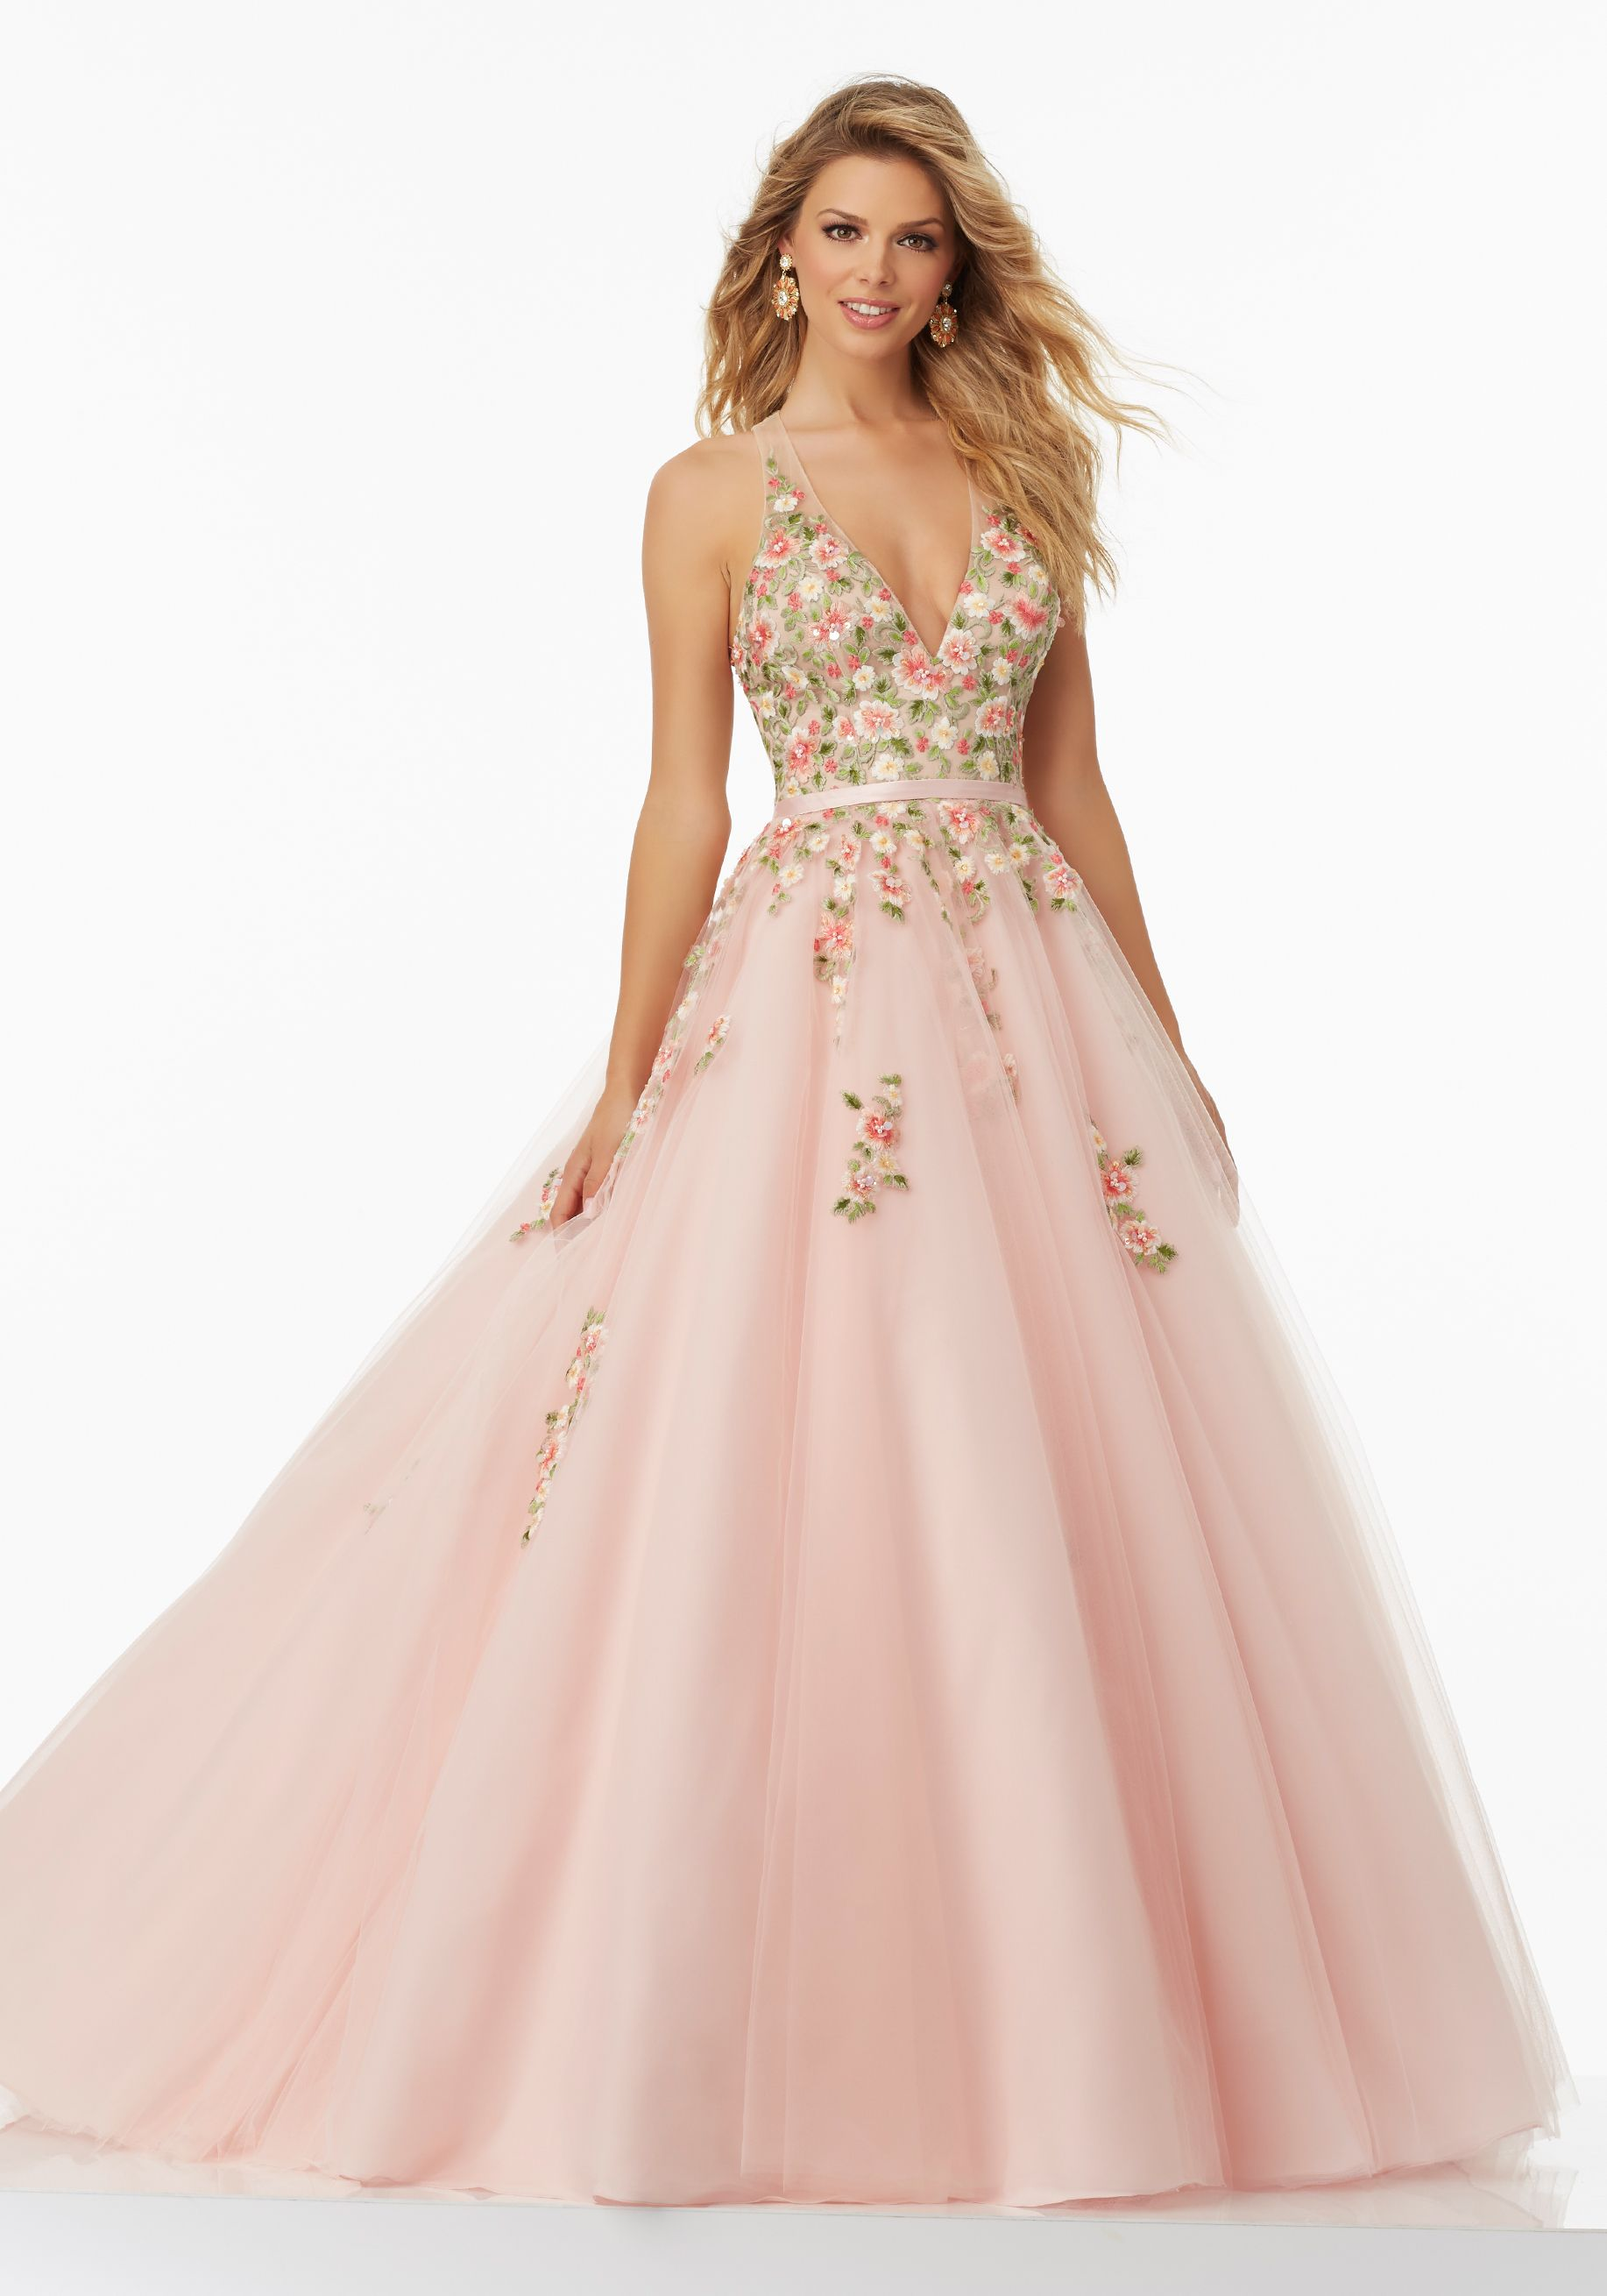 Mori lee light pink prom dress v neck A line ball gown floral | Prom ...